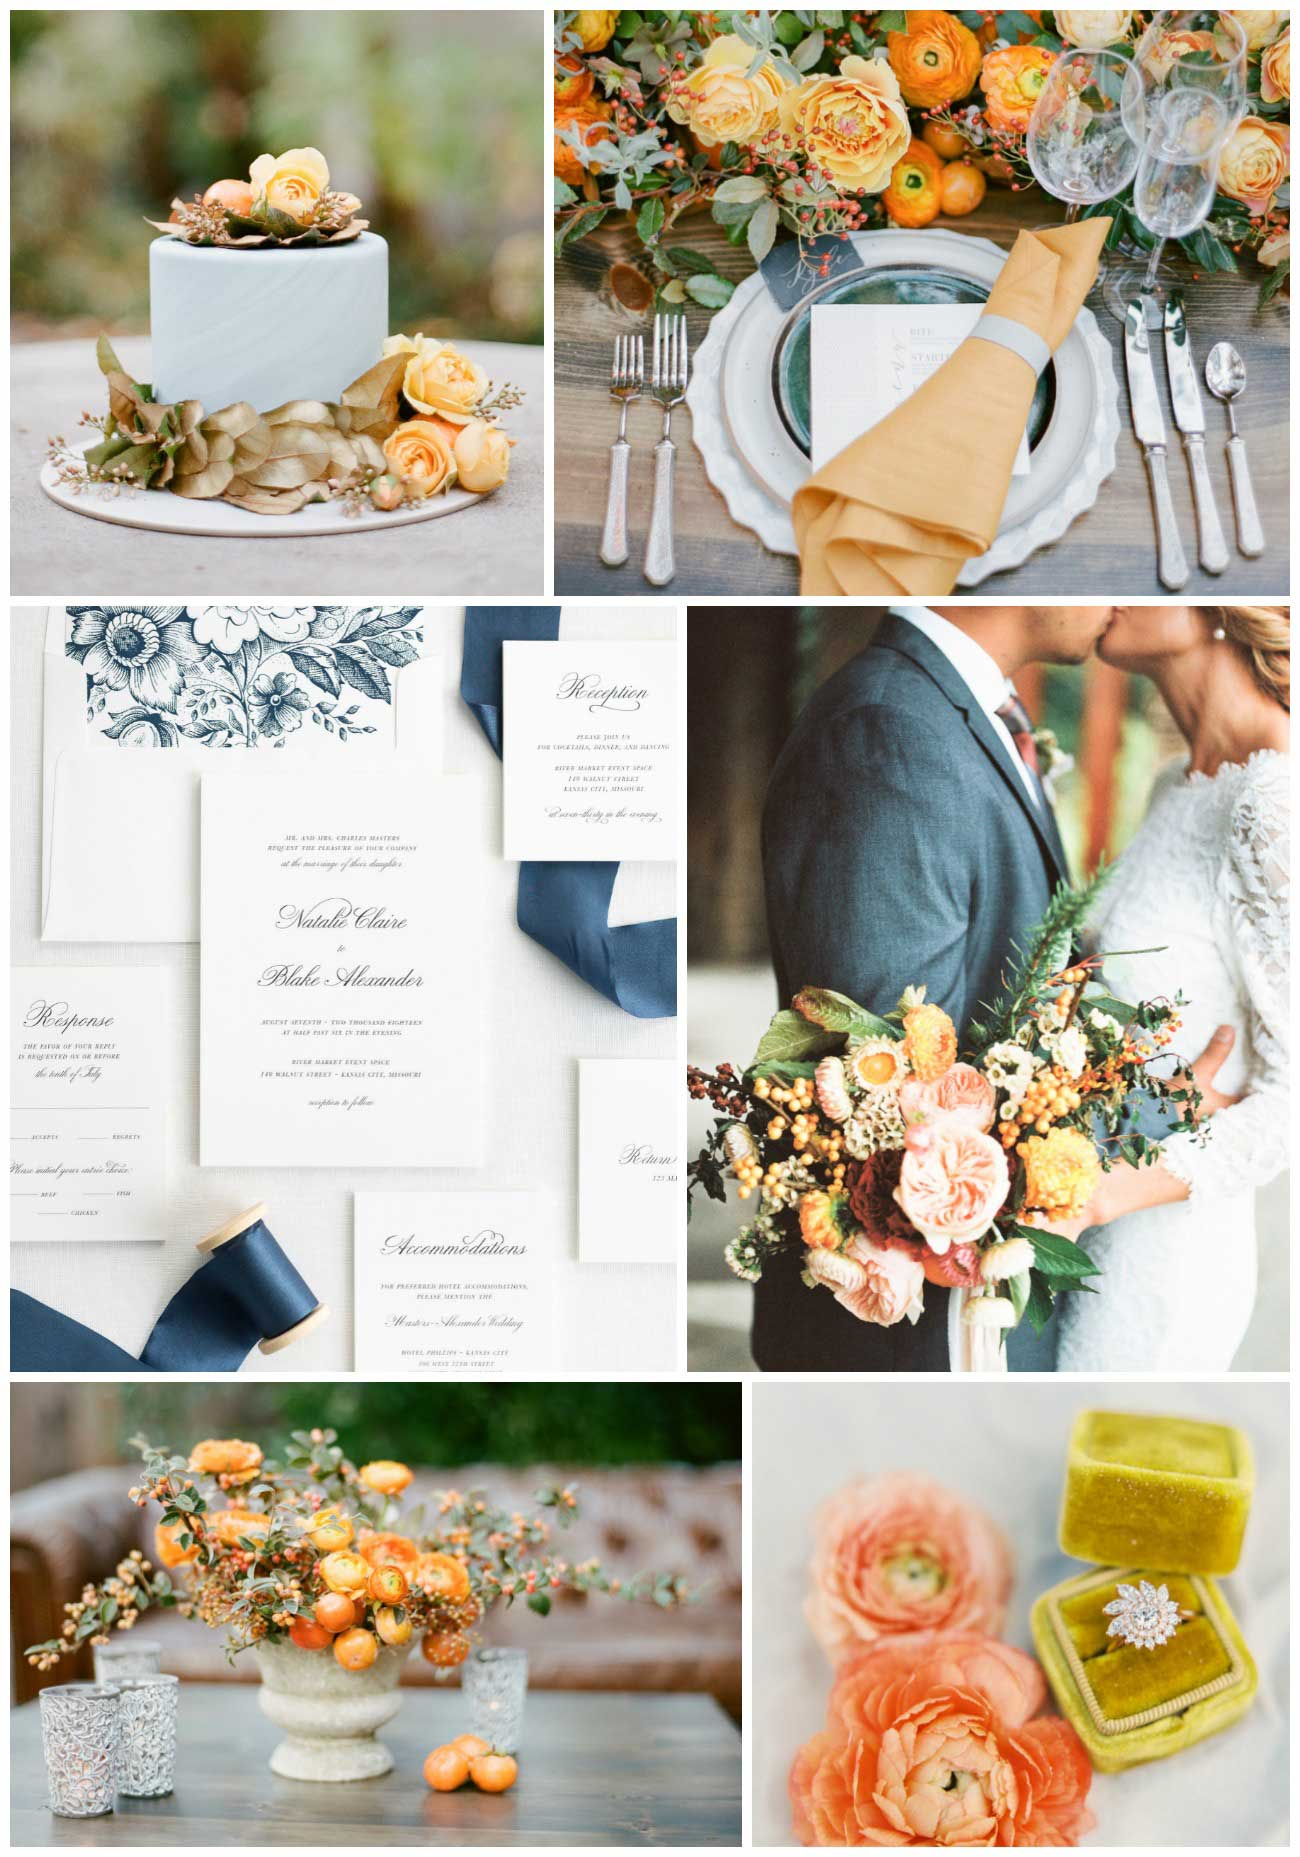 Autumn Orange and Blue Wedding Inspiration